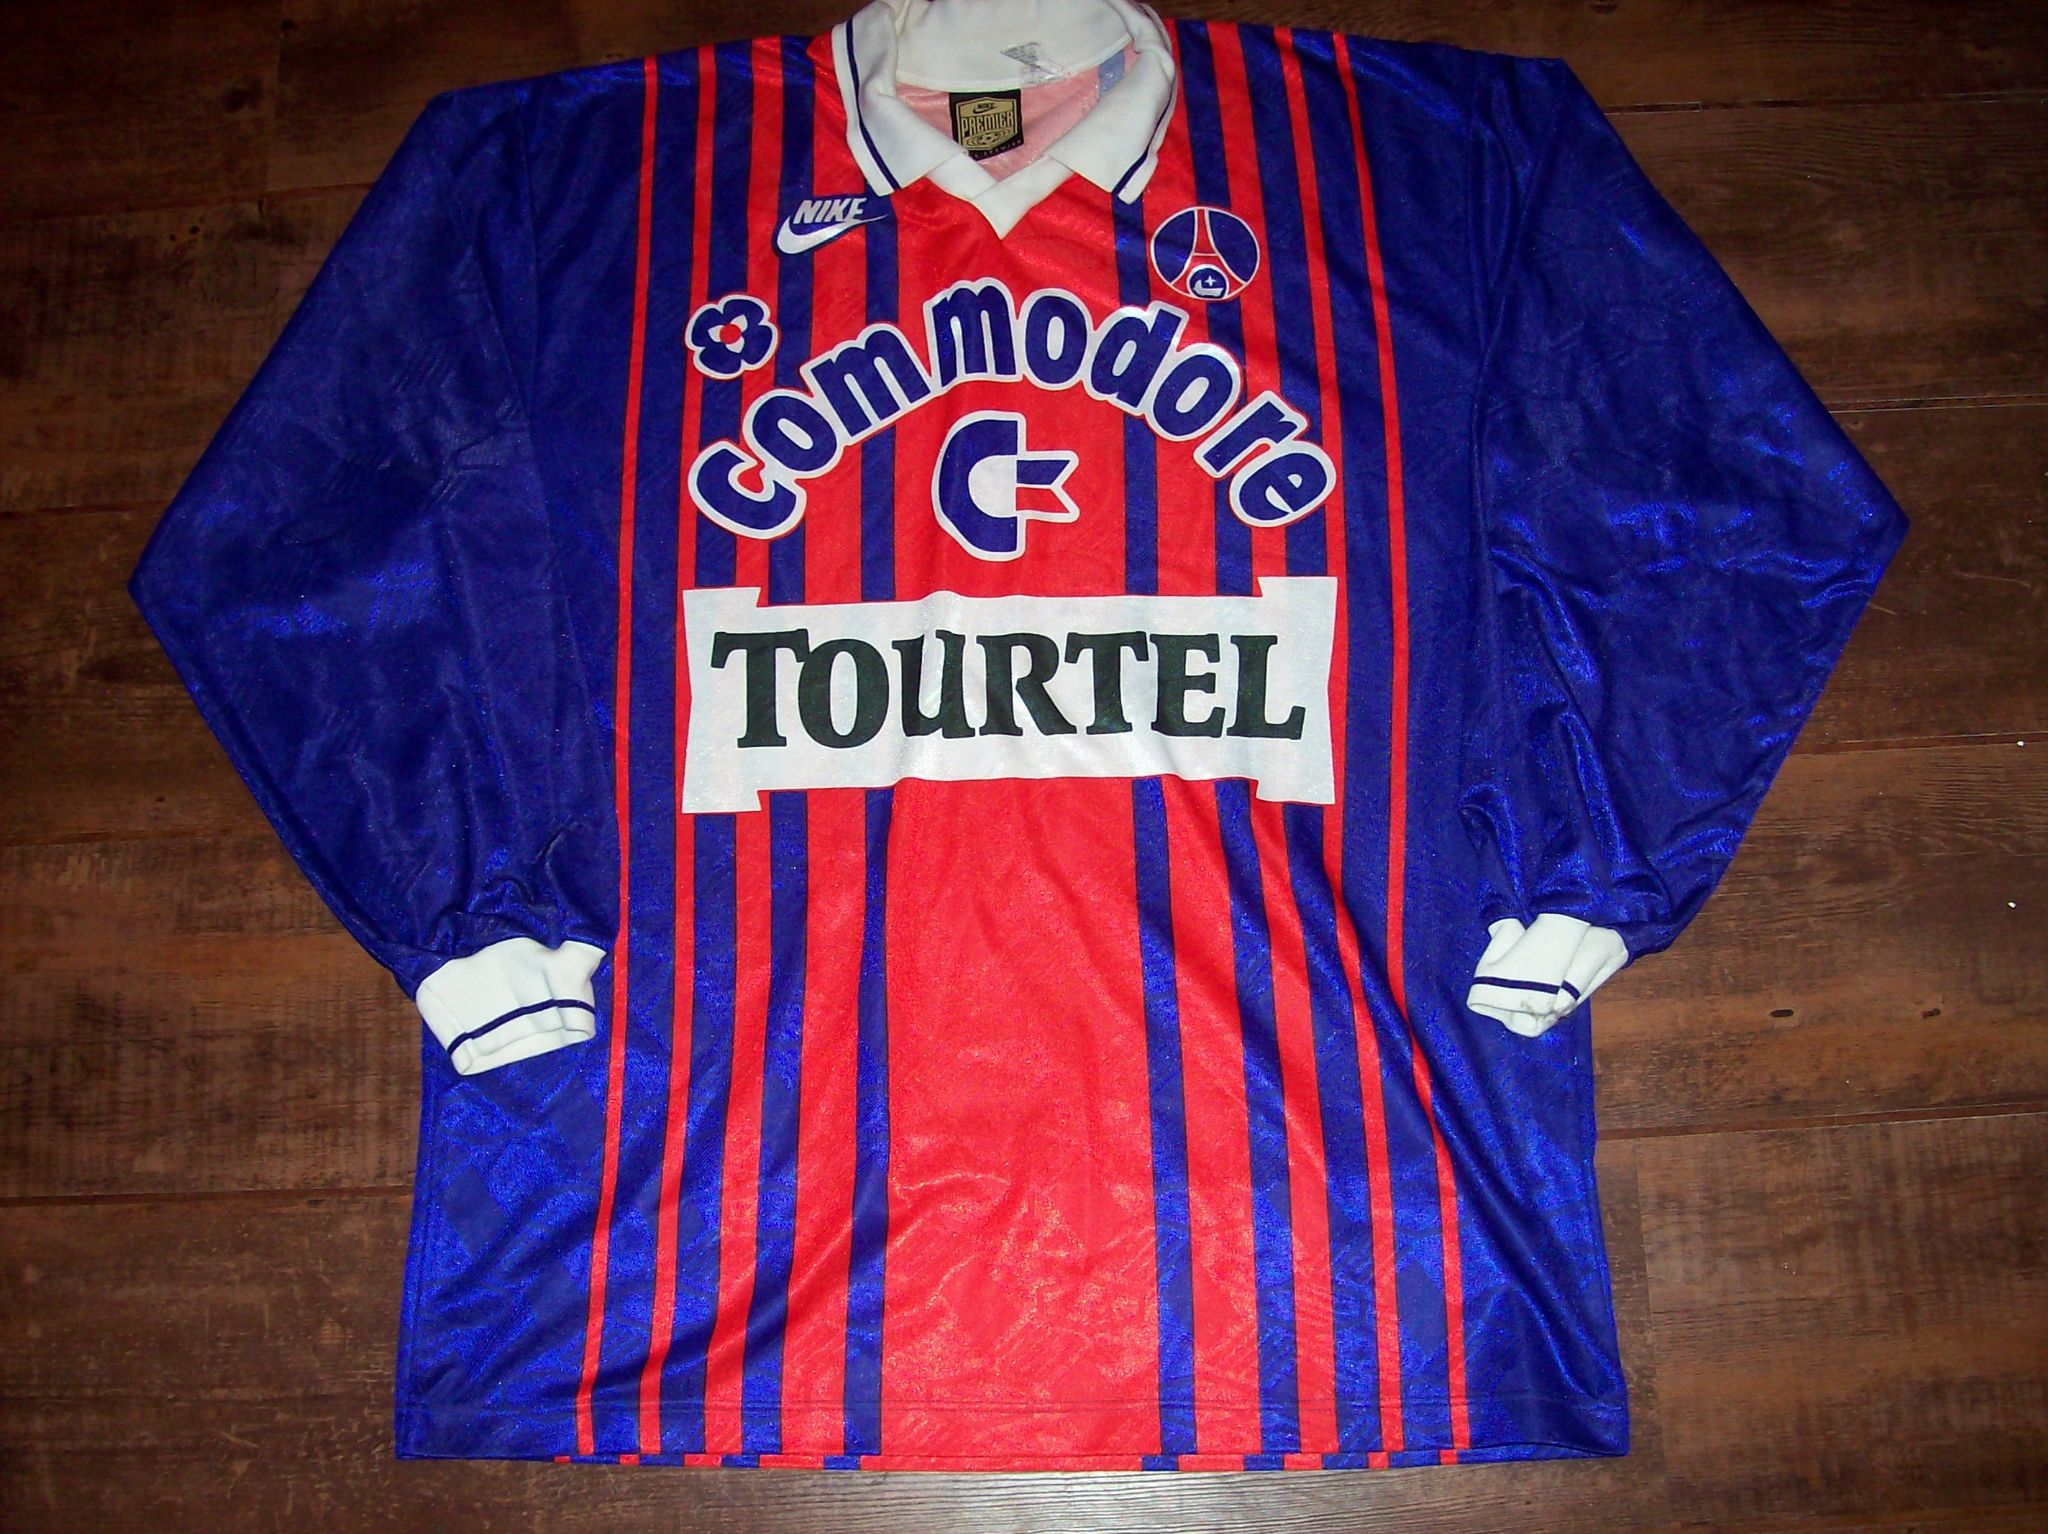 78d490ec8904f 1993 1994 PSG Paris Saint Germain L s Football Shirt Adults Large